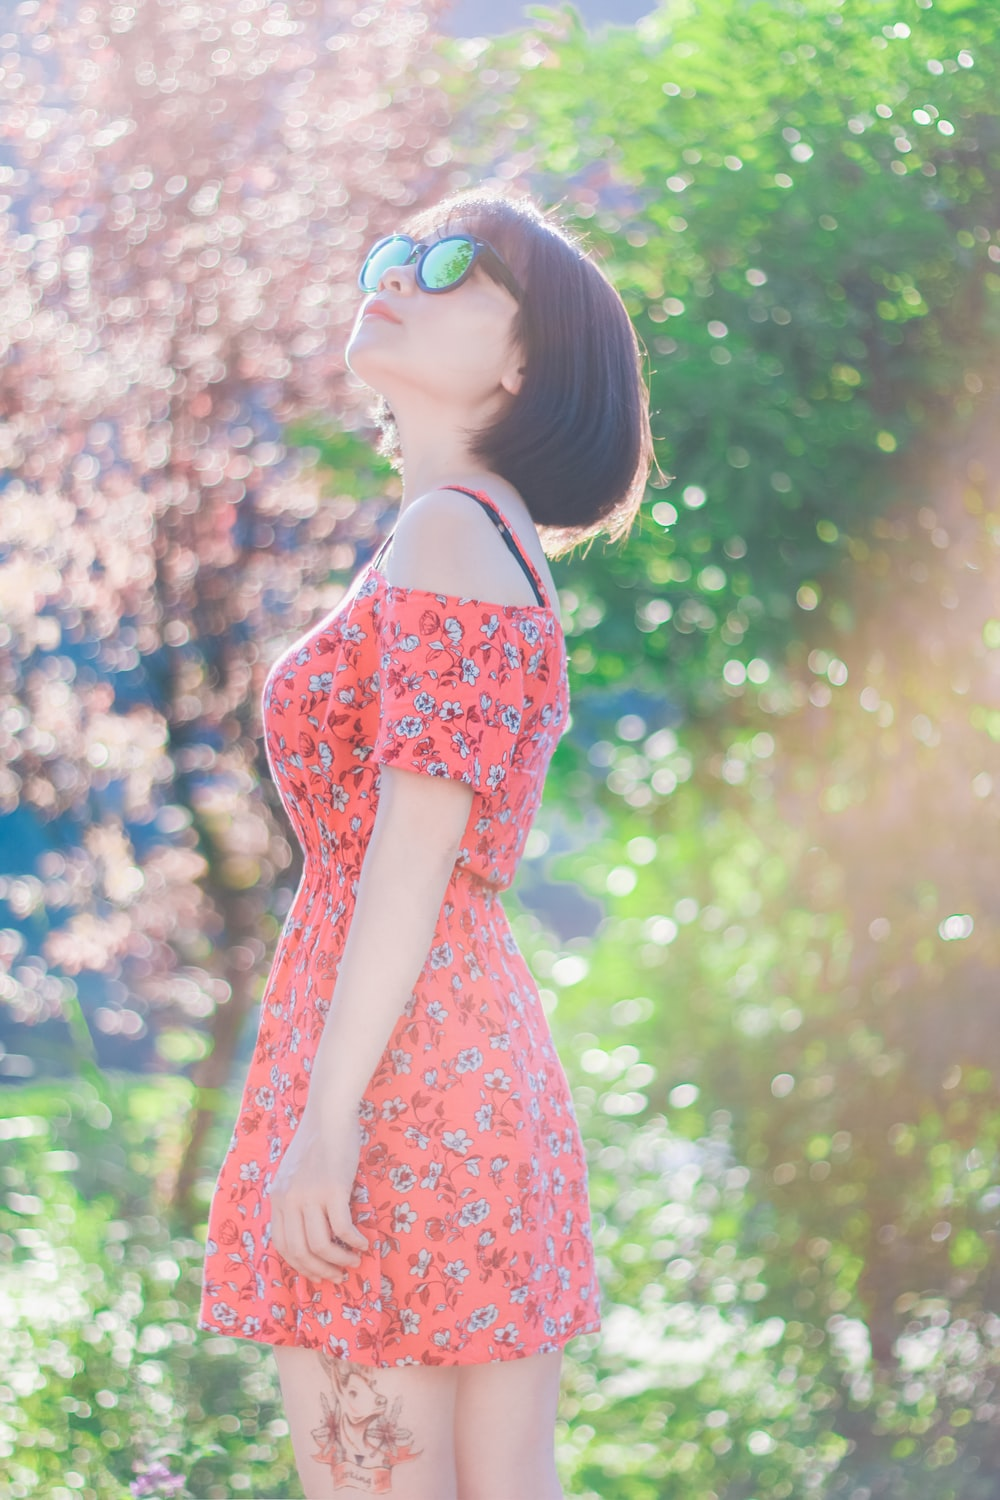 woman wearing dress and sunglasses standing near trees